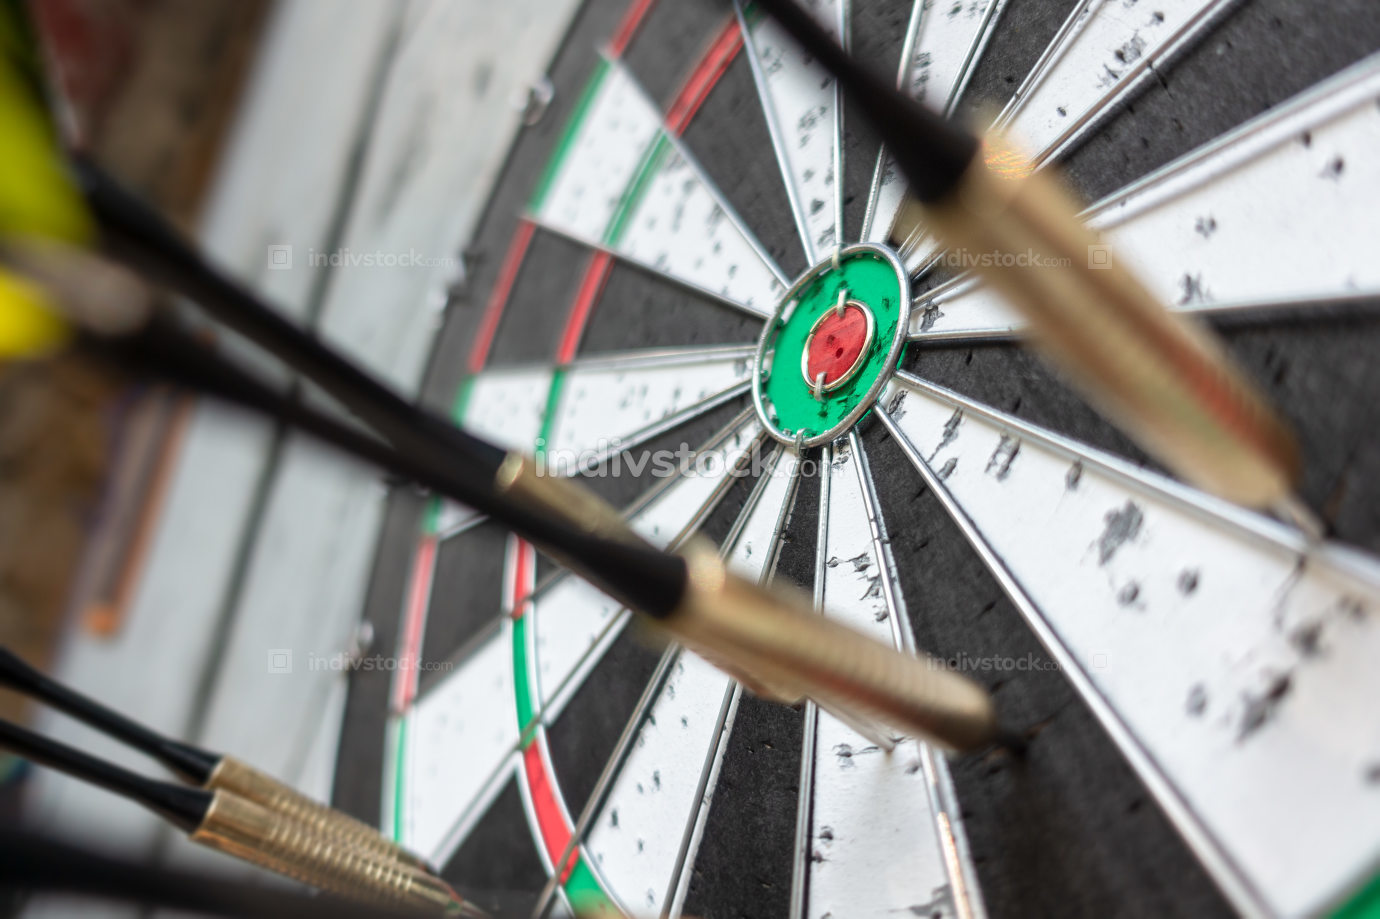 a typical darts game with no dart in the bullseye